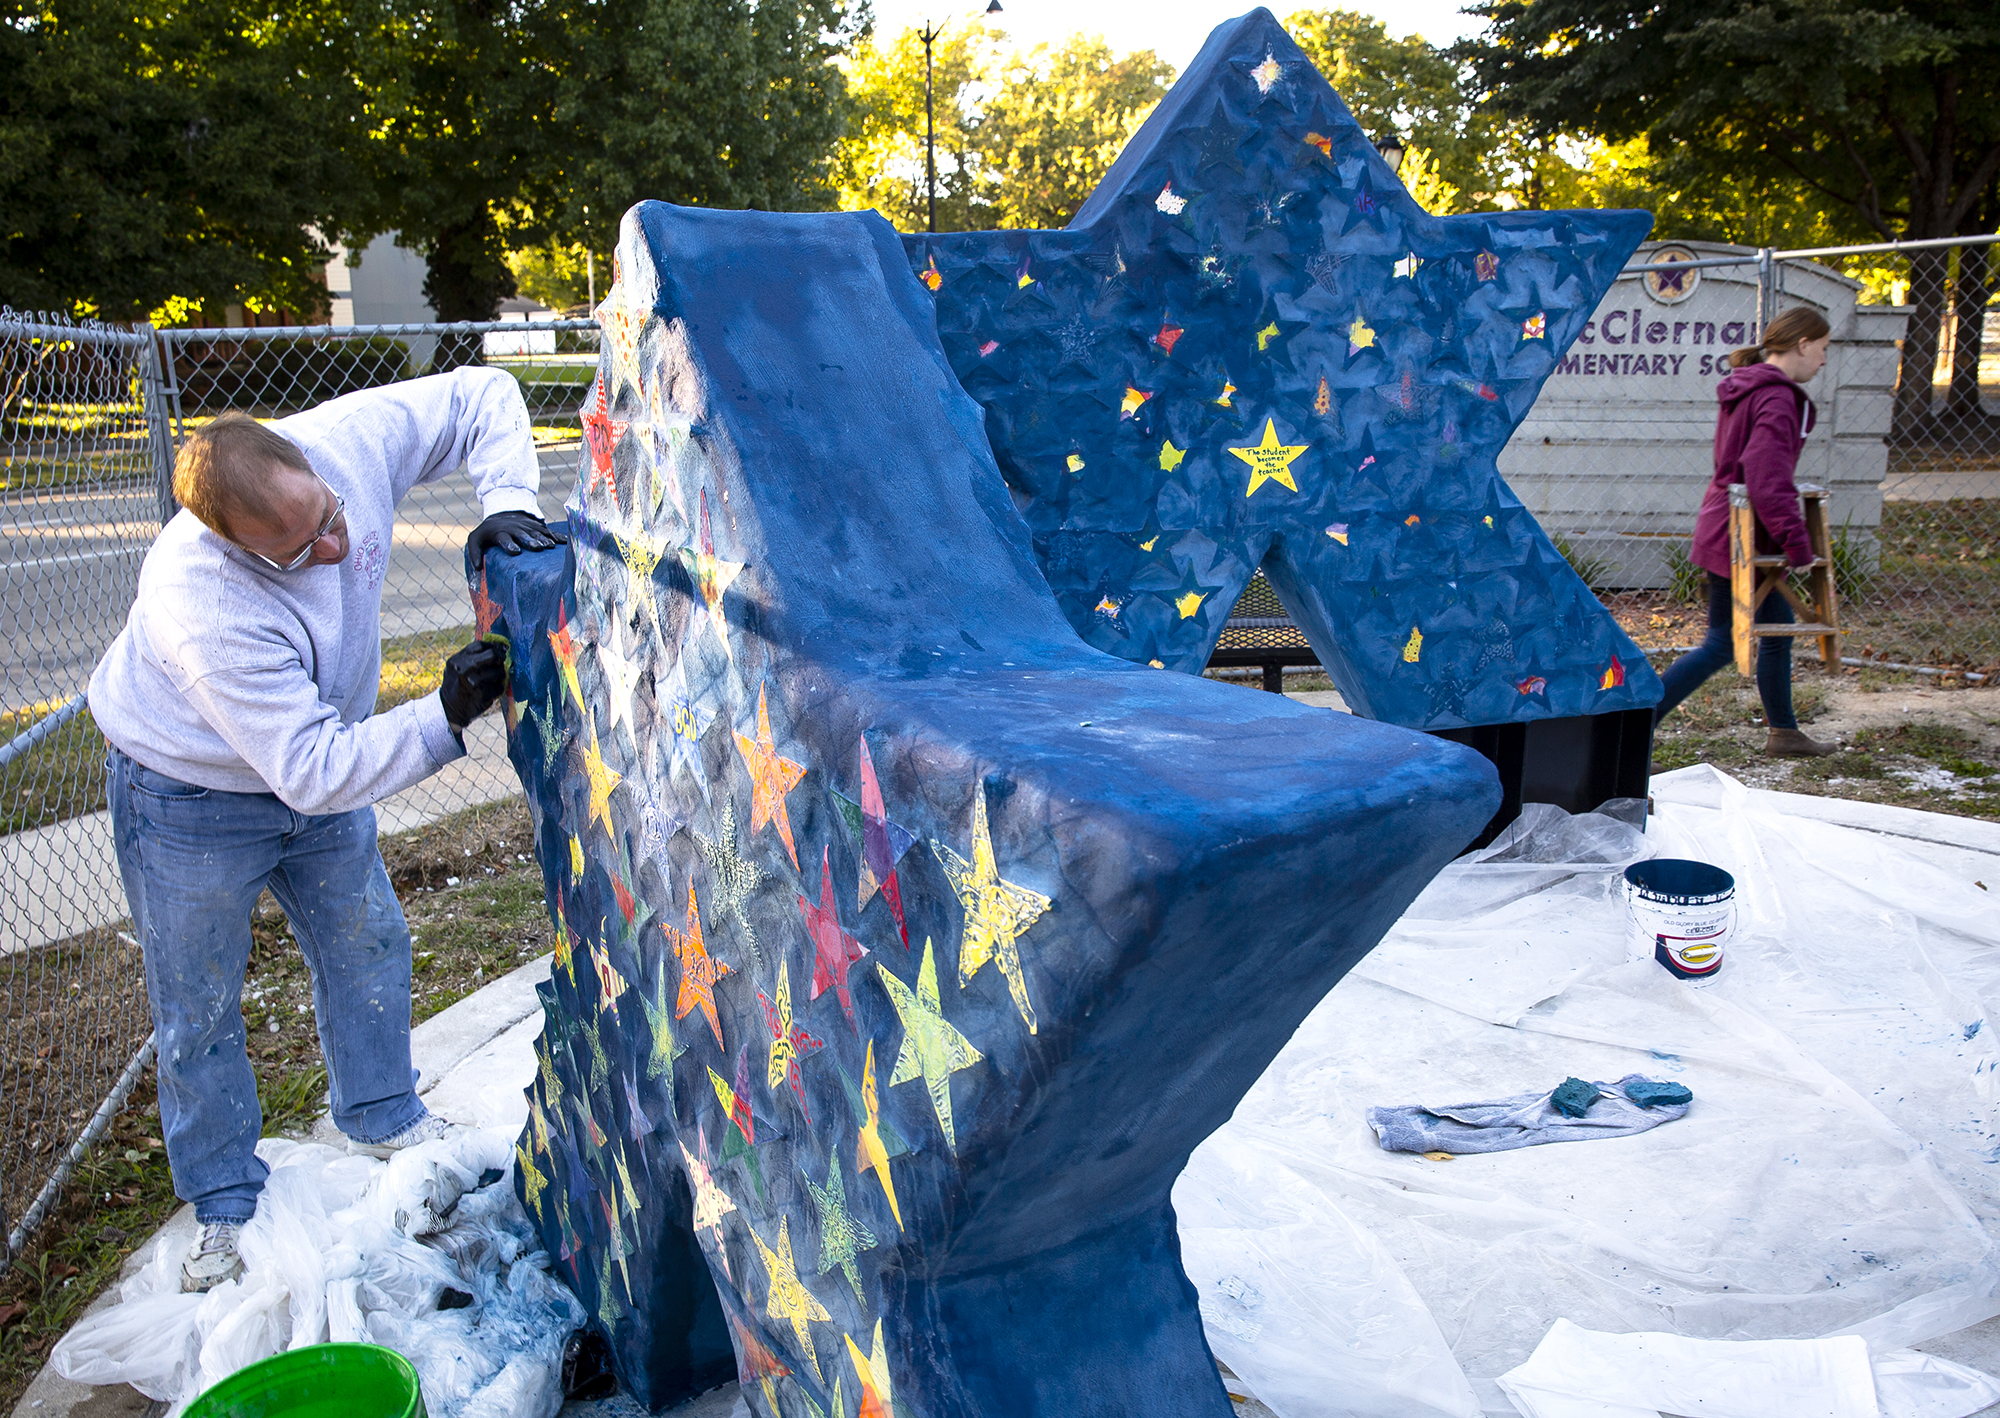 Tom George, a Springfield Art Association volunteer and board member, and Erin Svendsen, SAA education coordinator, worked on the finishing details of three large stars with inlaid glass tiles made by each of the students, faculty and staff at McClernand Elementary School Wednesday, Oct. 17, 2018 outside the school. It's the first art installation project that is part of the Bronwyn Eves Memorial School Art Project. Eves was a past SAA board president and volunteer who died in 2016. Her family and friends created the fund in her memory, which each year will build public art installations designed by students at schools throughout Sangamon County. The project is also part of the SAA's Art Outreach program. [Rich Saal/The State Journal-Register]